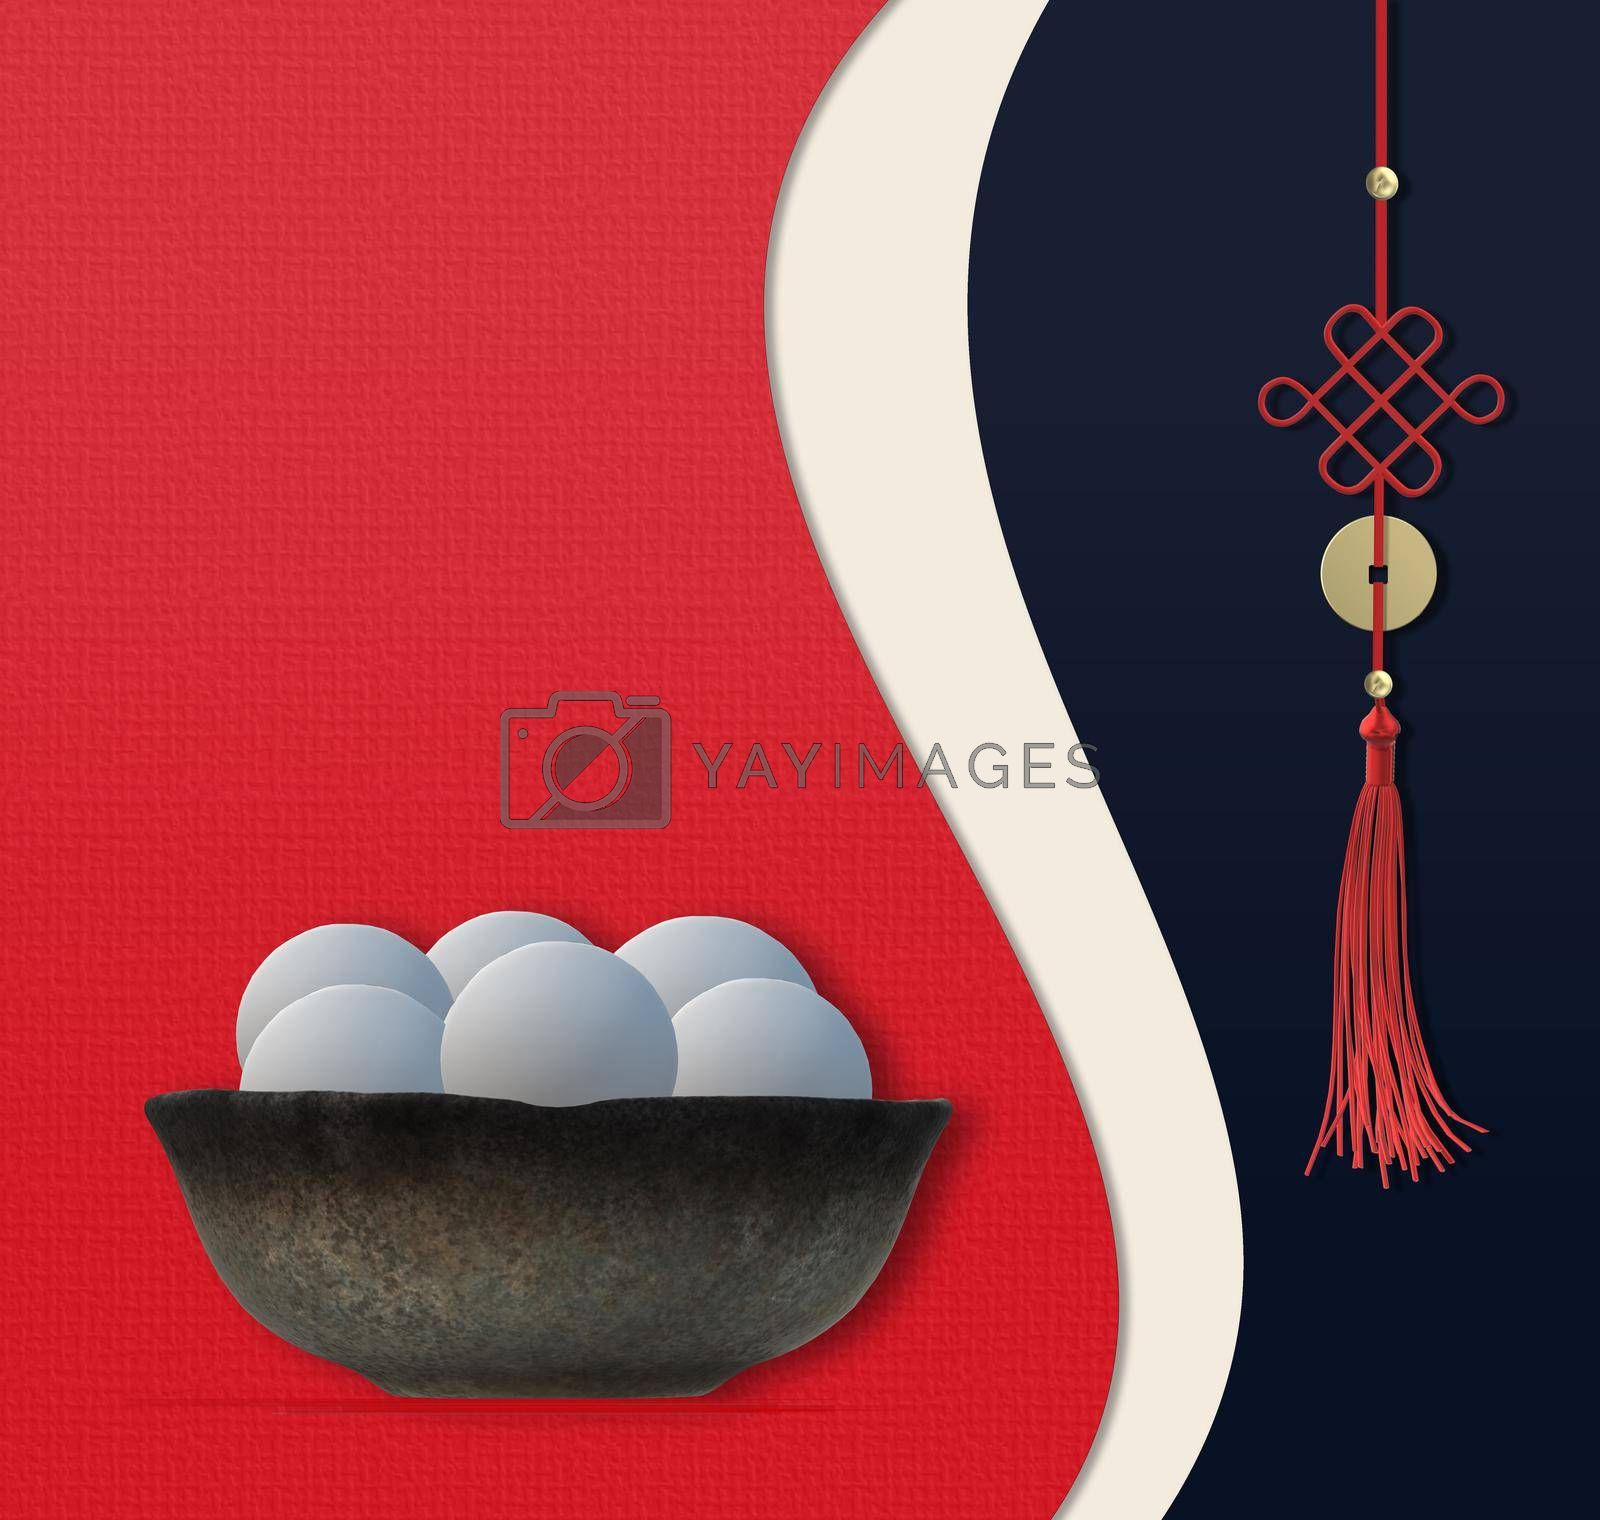 Chinese Lantern Festival food. Chinese food dumplings rice balls in bowl. Asian knot. Template for Chinese New Year Lantern festival celebration. Copy space, mock up. 3D illustration